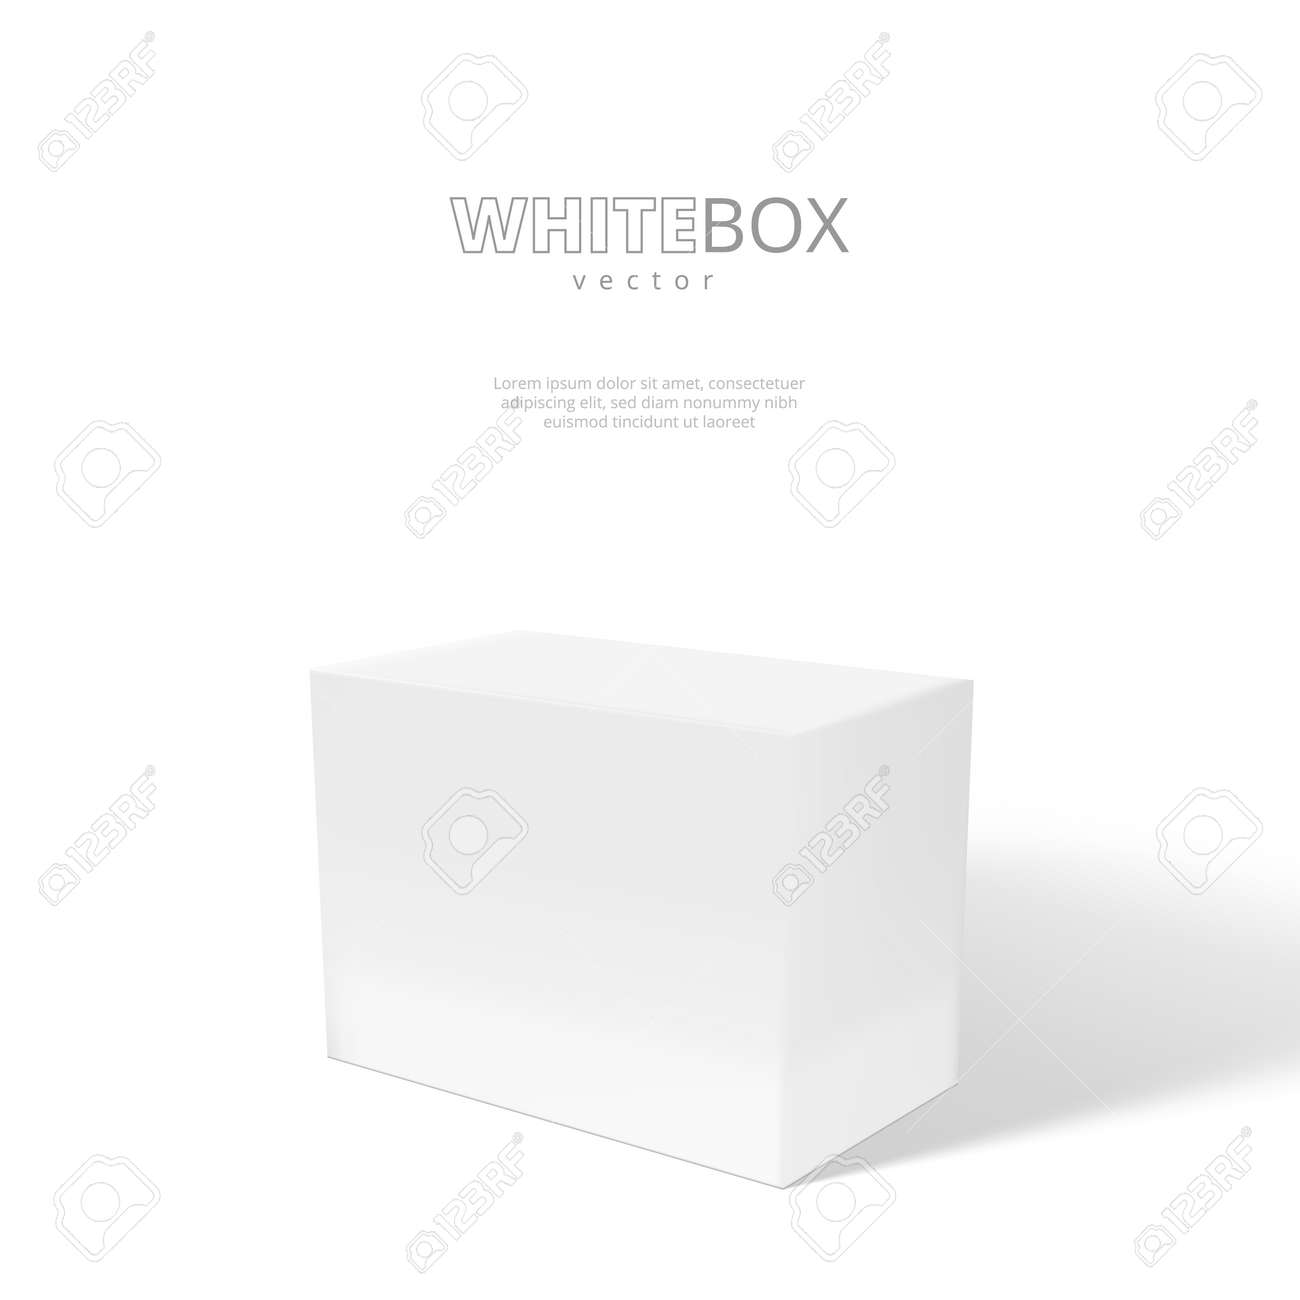 3D White Box With Shadow Isolated On Background - 169413605